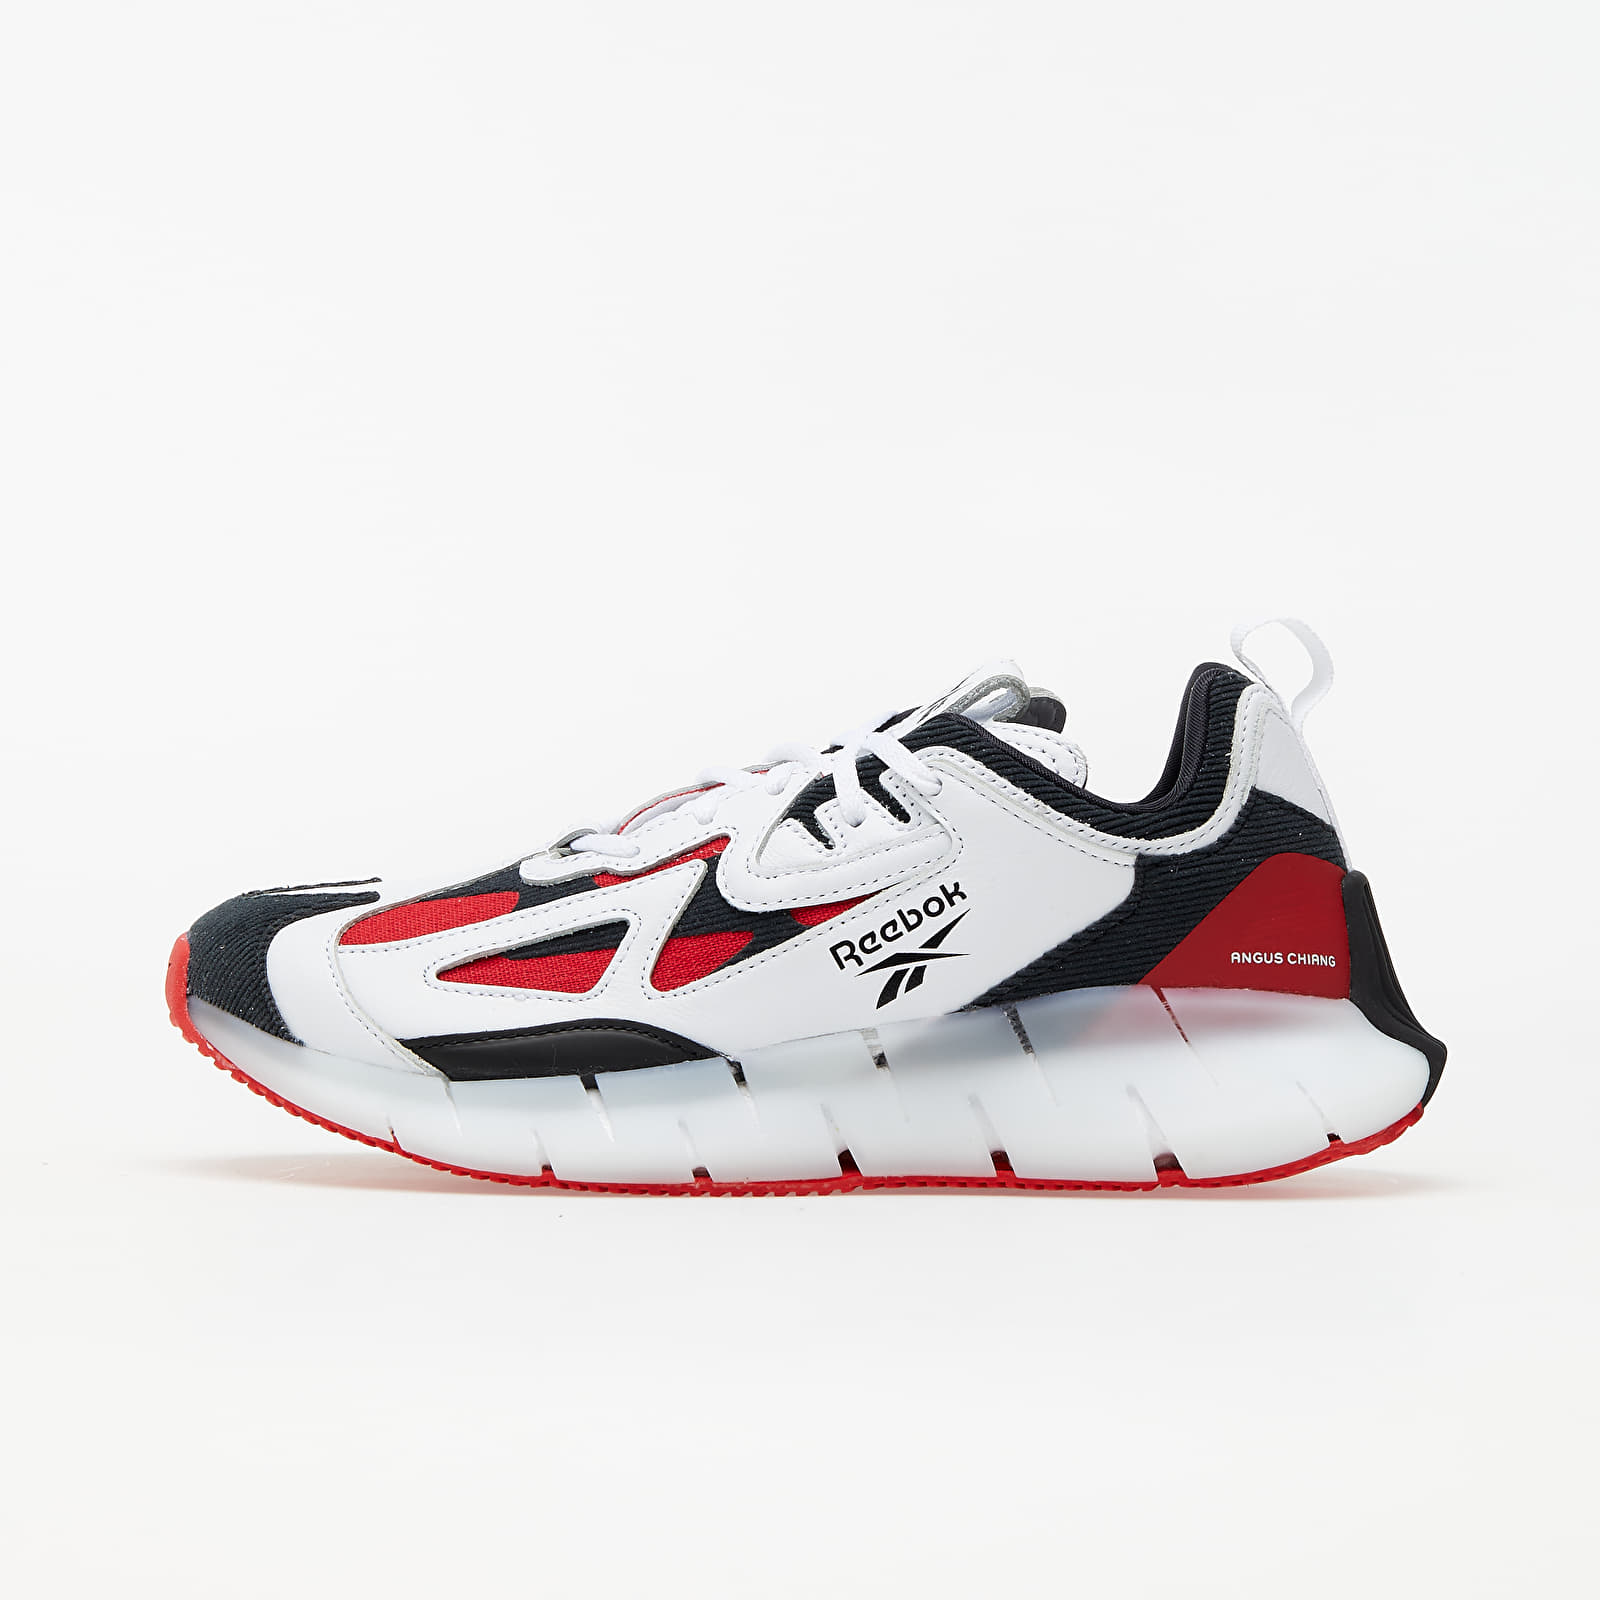 Men's shoes Reebok Zig Kinetica Concept White/ Vecred/ Black